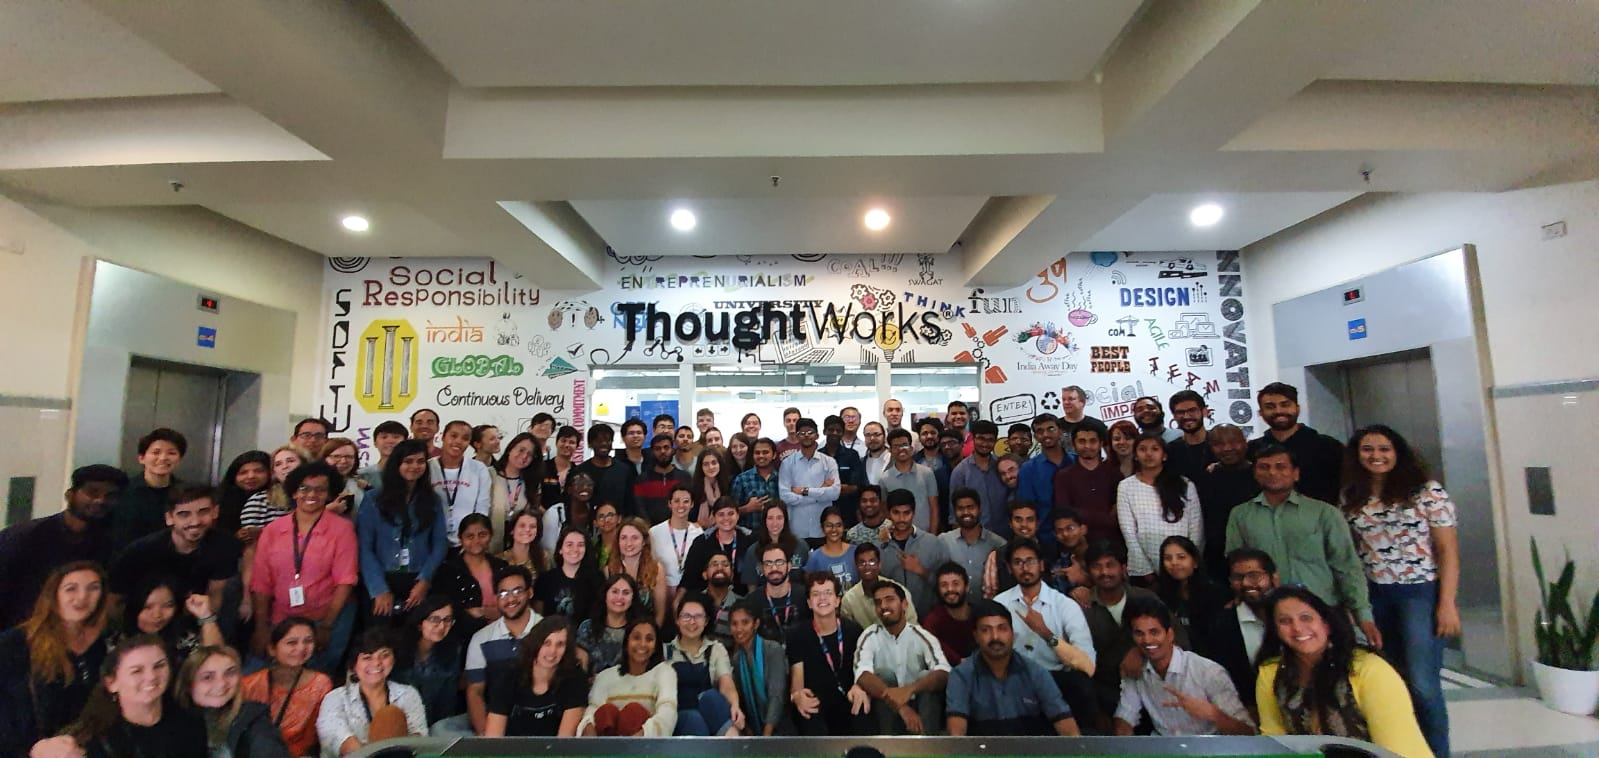 ThoughtWorks Thailand Great Place to Work-Certified